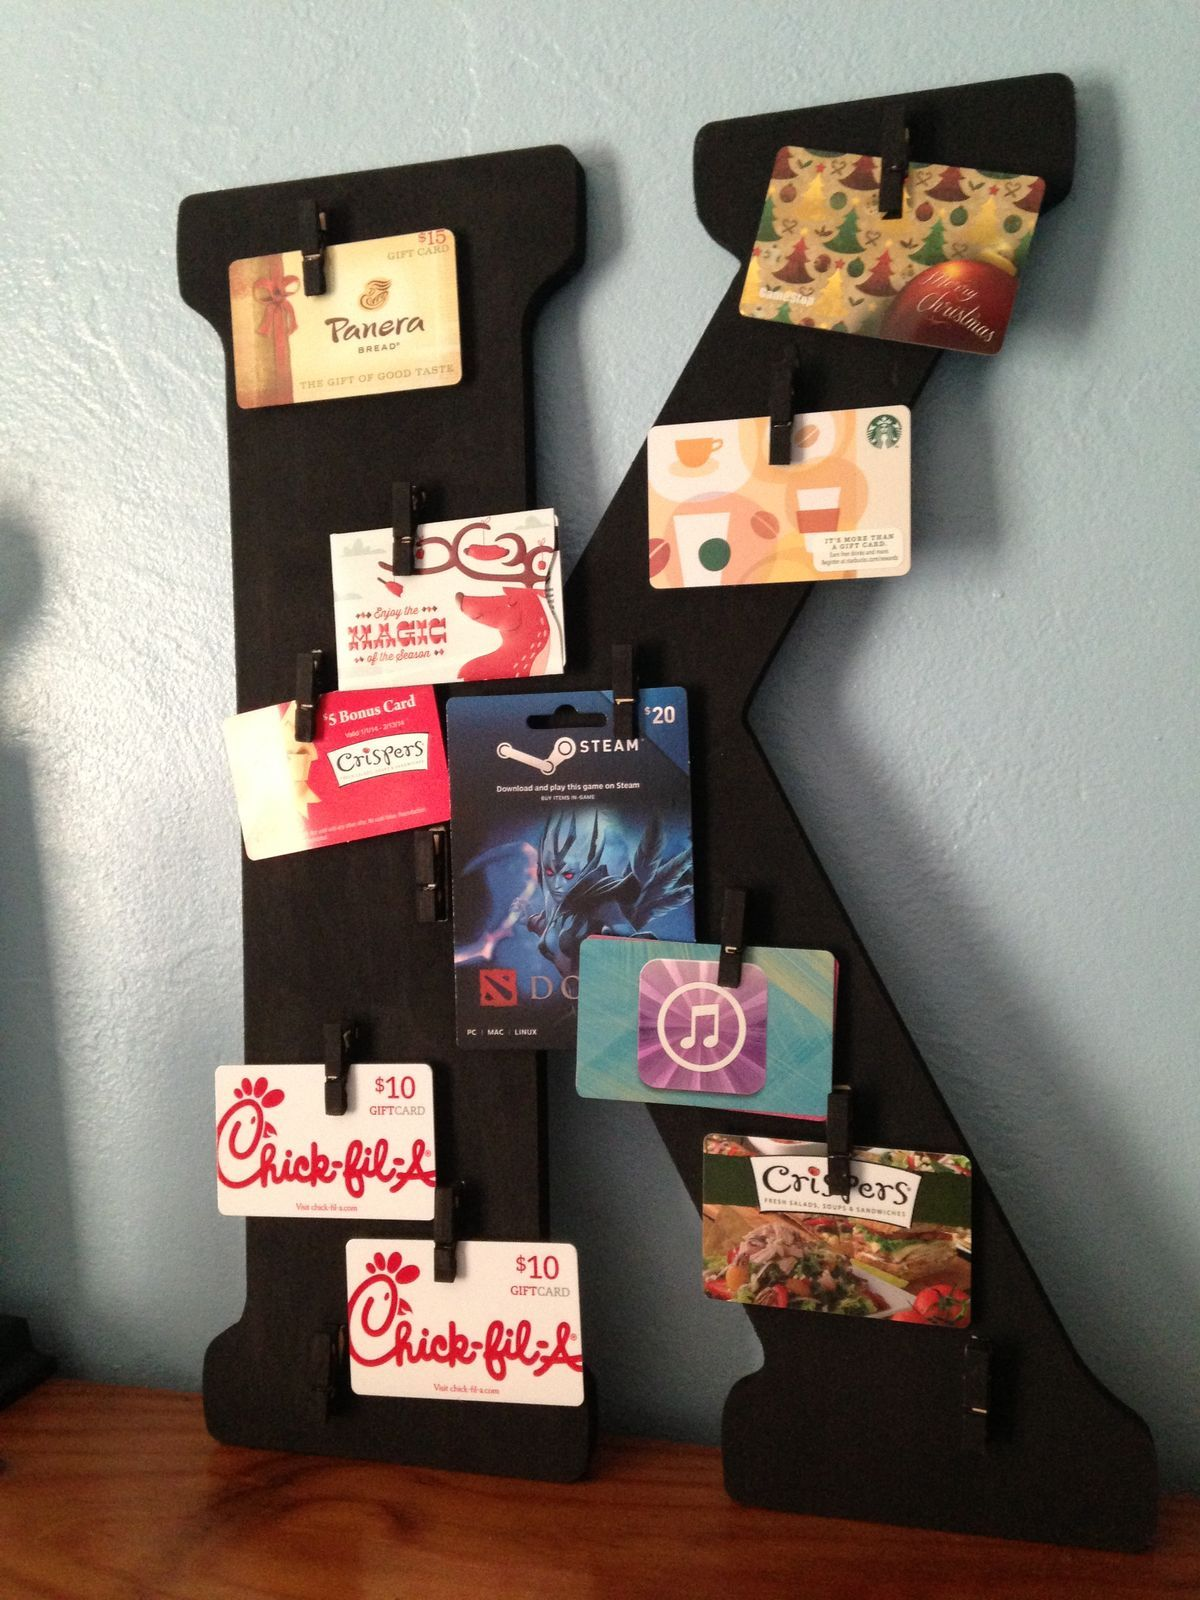 Pin By Ashley Briscoe On Gift Ideas Pinterest Gifts Teacher